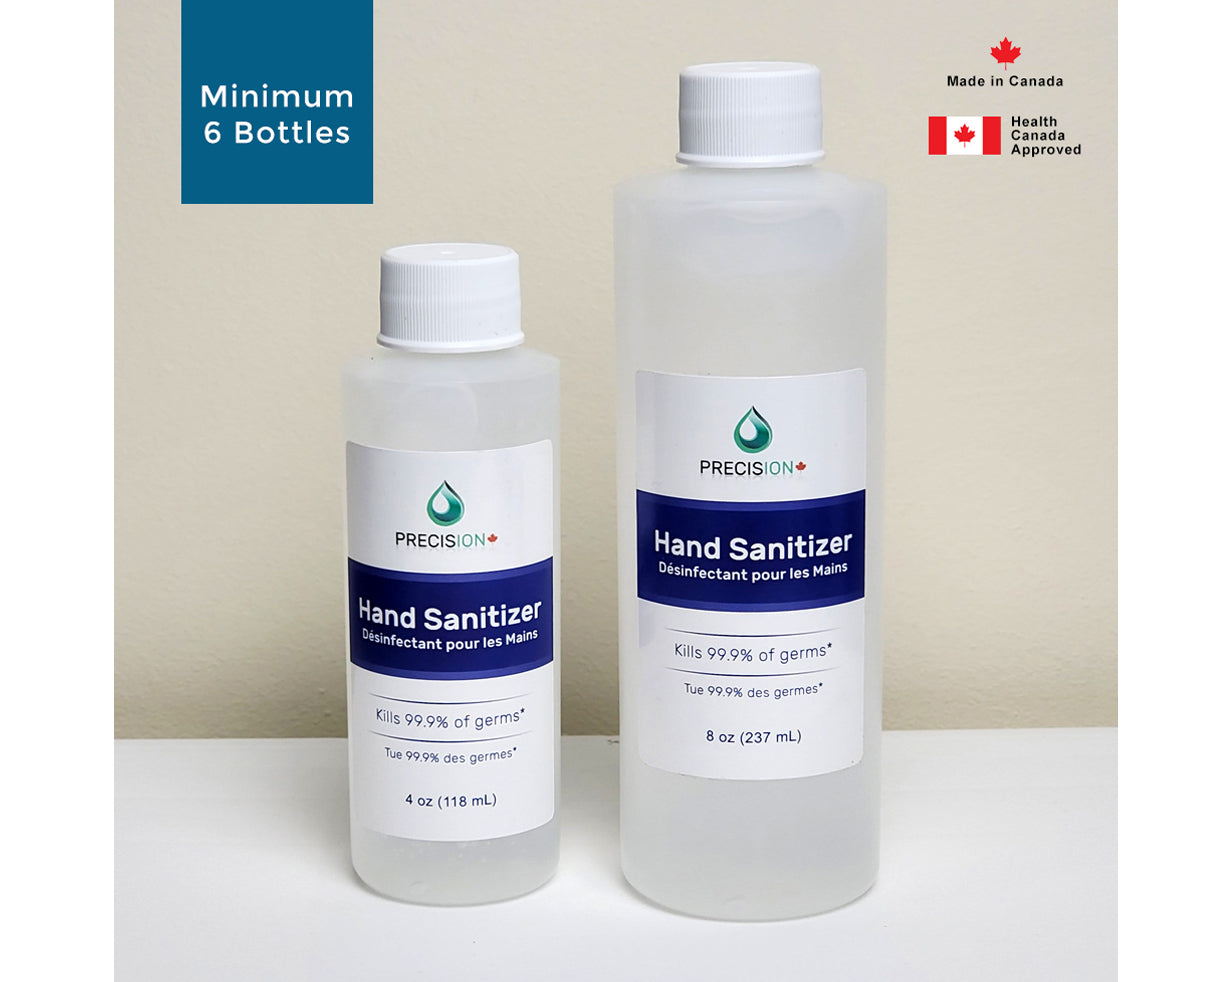 Precision Hand Sanitizer - 4oz/118ml or 8oz/237ml (Minimum 6 Bottles)